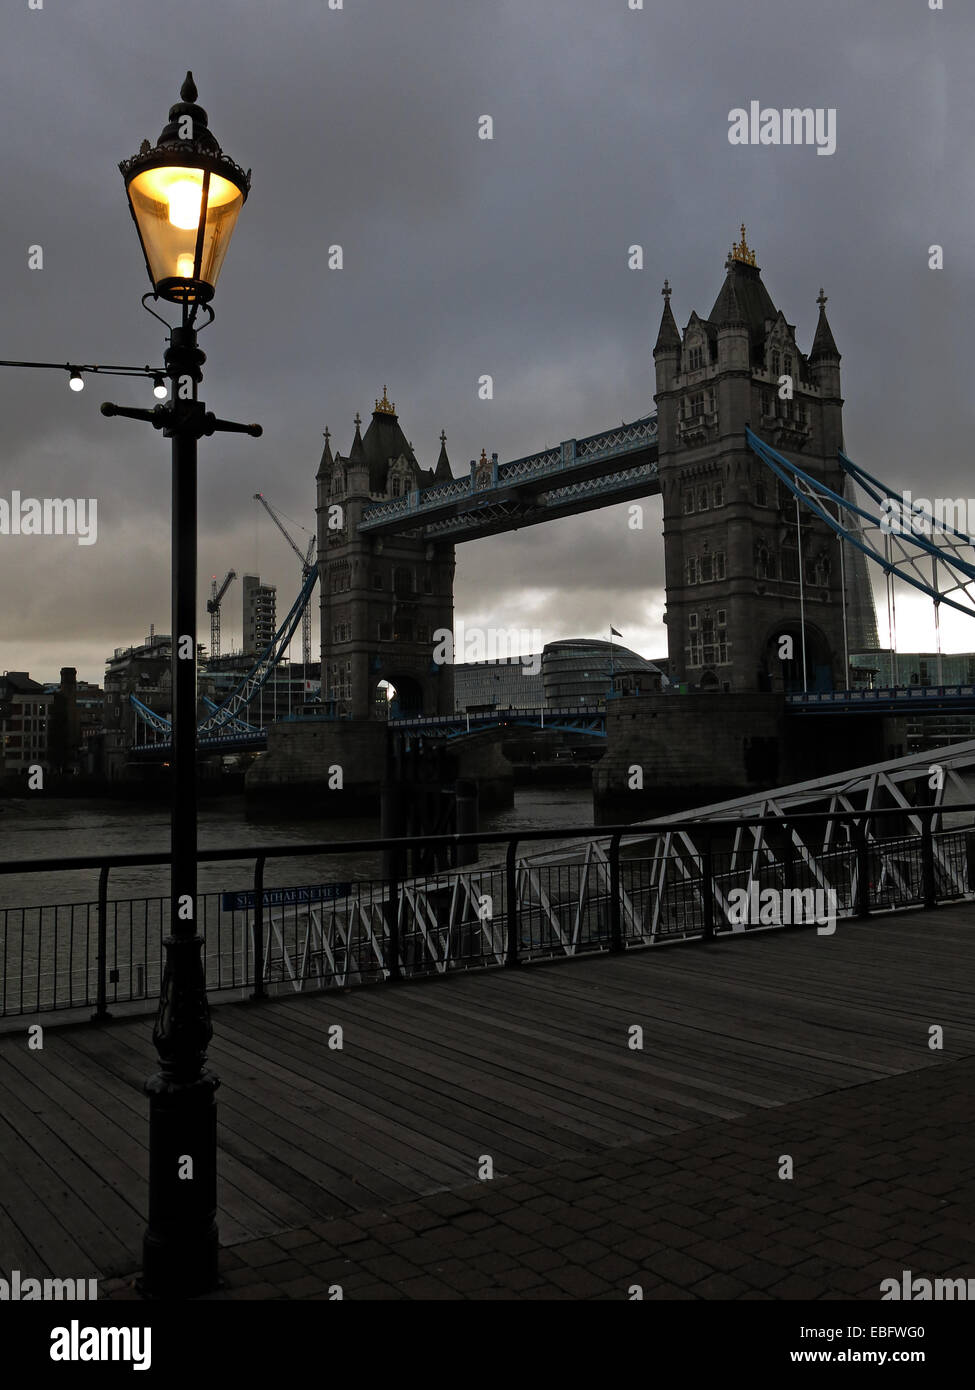 greater,night,evening,shot,United,Kingdom,GB,Great,Britain,hidden,icon,iconic,UK,street,light,old,fashioned,lighting,from,St,Catherines,dock,docks,Catherine,tourist,tourism,moody,interesting,atmospheric,hill,Towerhill,history,victorian,historic,grey,gray,SE1,2UP,SE12UP,closed,gotonysmith,crossing,crosses,pont,from,North,bank,northbank,hamlets,Bascule,suspension,famous,sight,sights,most,1884,Horace,Jones,and,John,Wolfe,Barrys,design,landmark,Buy Pictures of,Buy Images Of